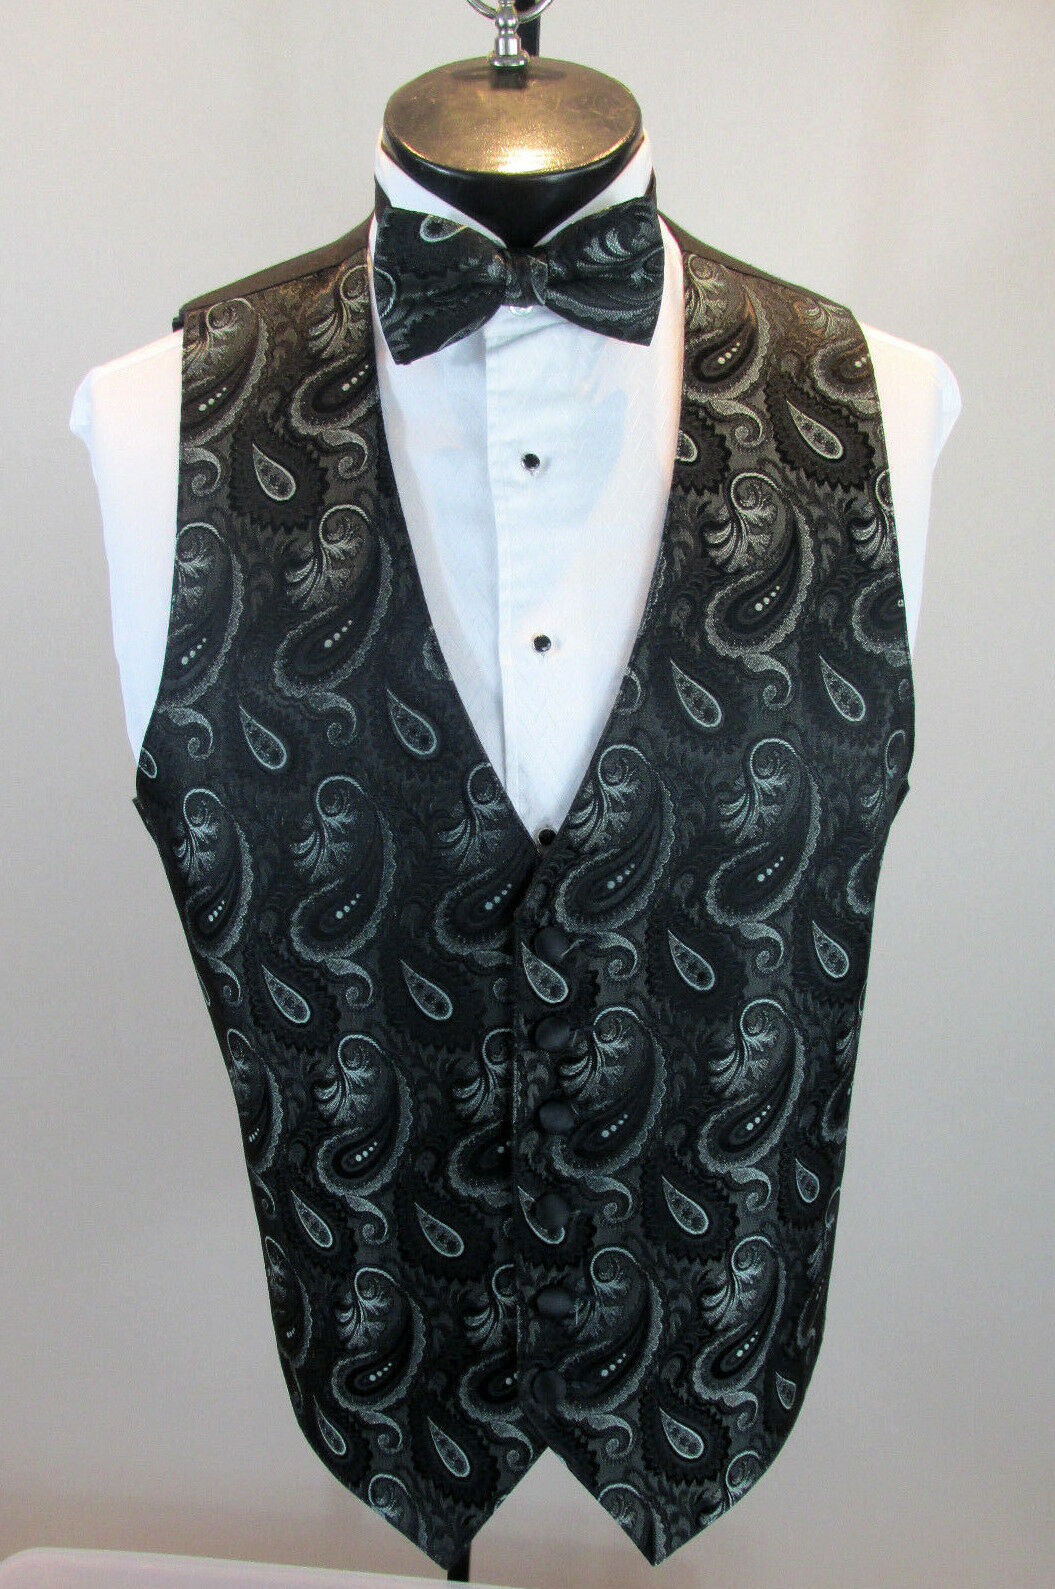 Mens Formal Vest Black & Silver Paisley Design Matching Bow Tie Included L B6